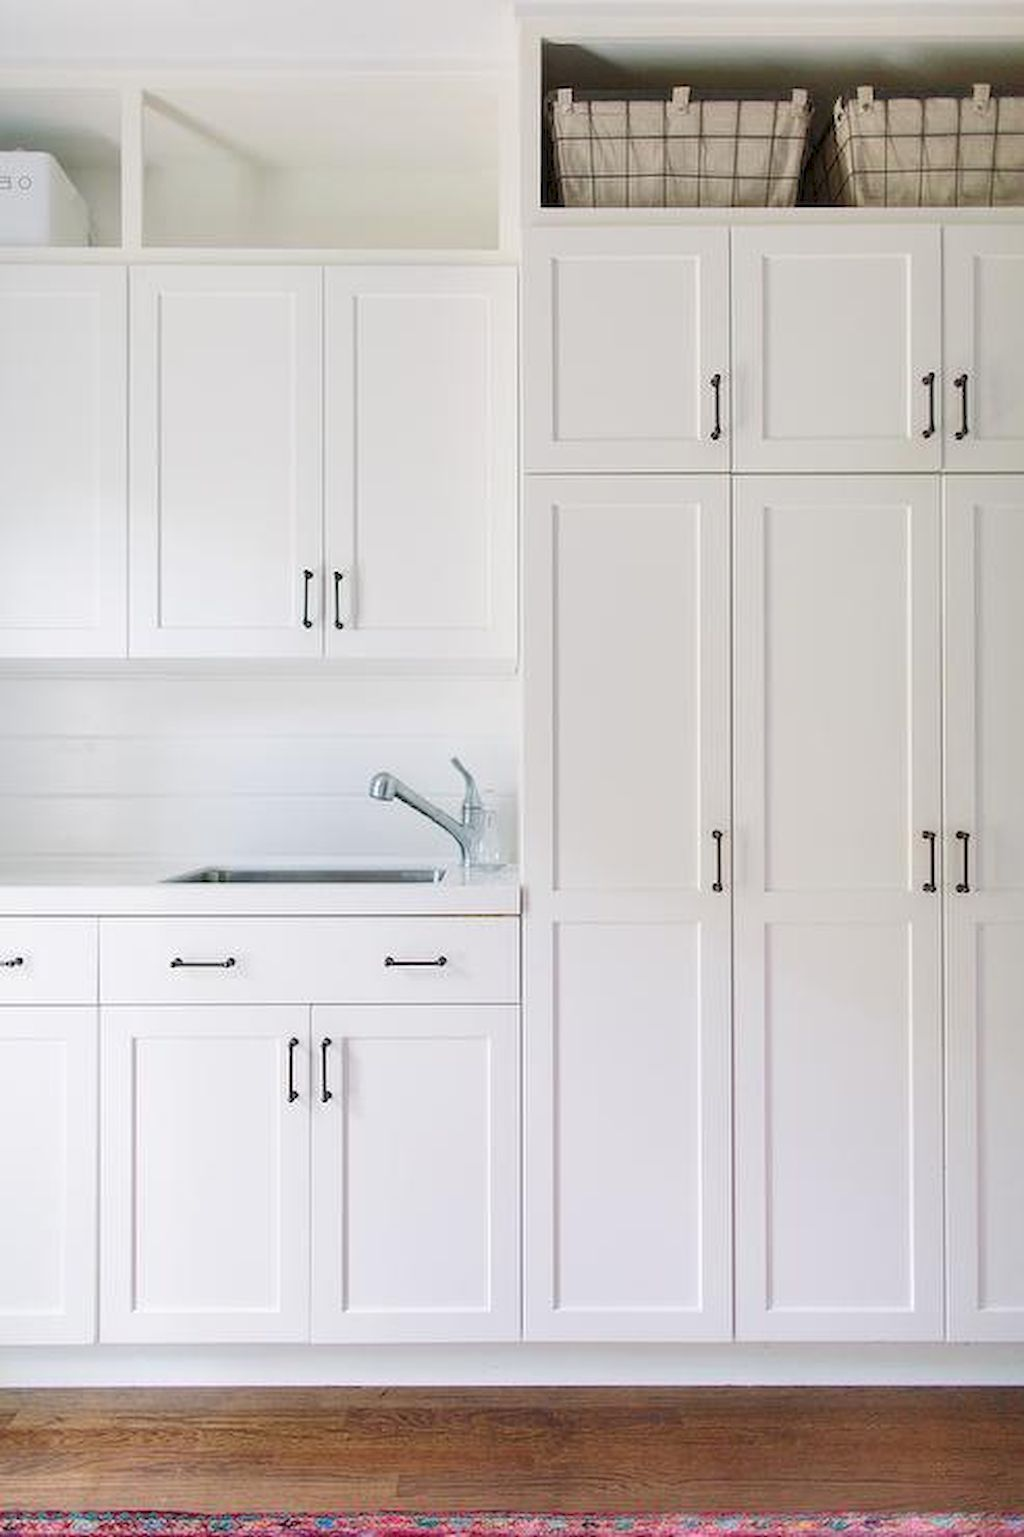 Diy Laundry Room Storage Shelves Ideas 55 White Laundry Rooms